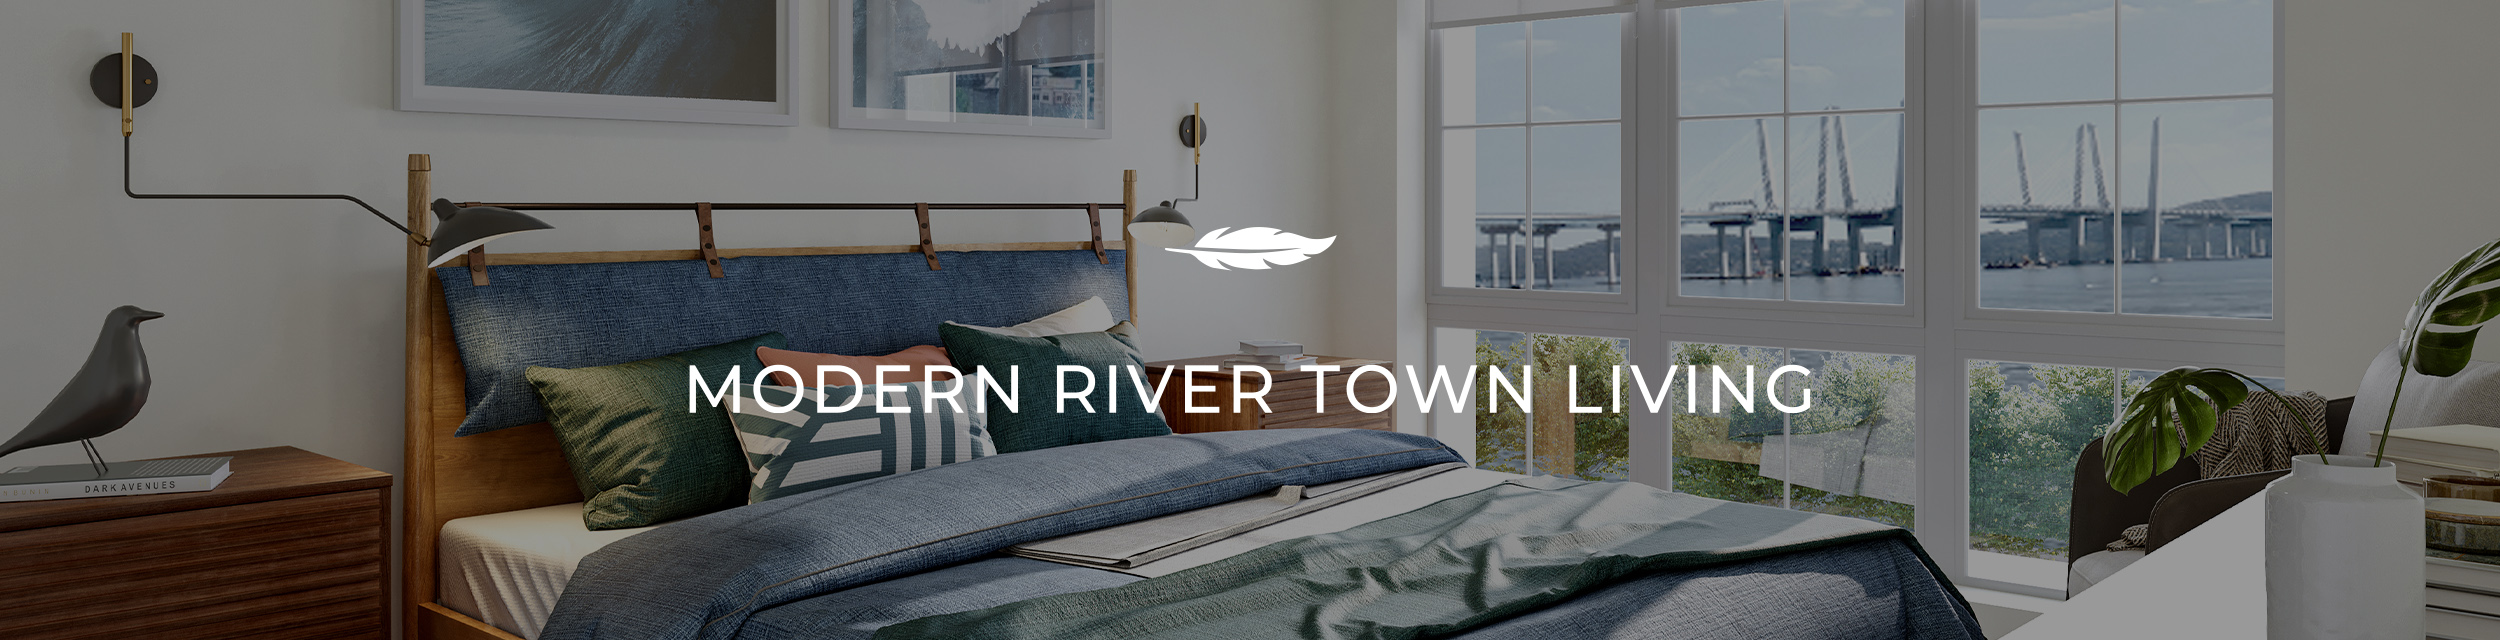 Emerson bedroom overlooking the water. Text: Modern River Town Living.